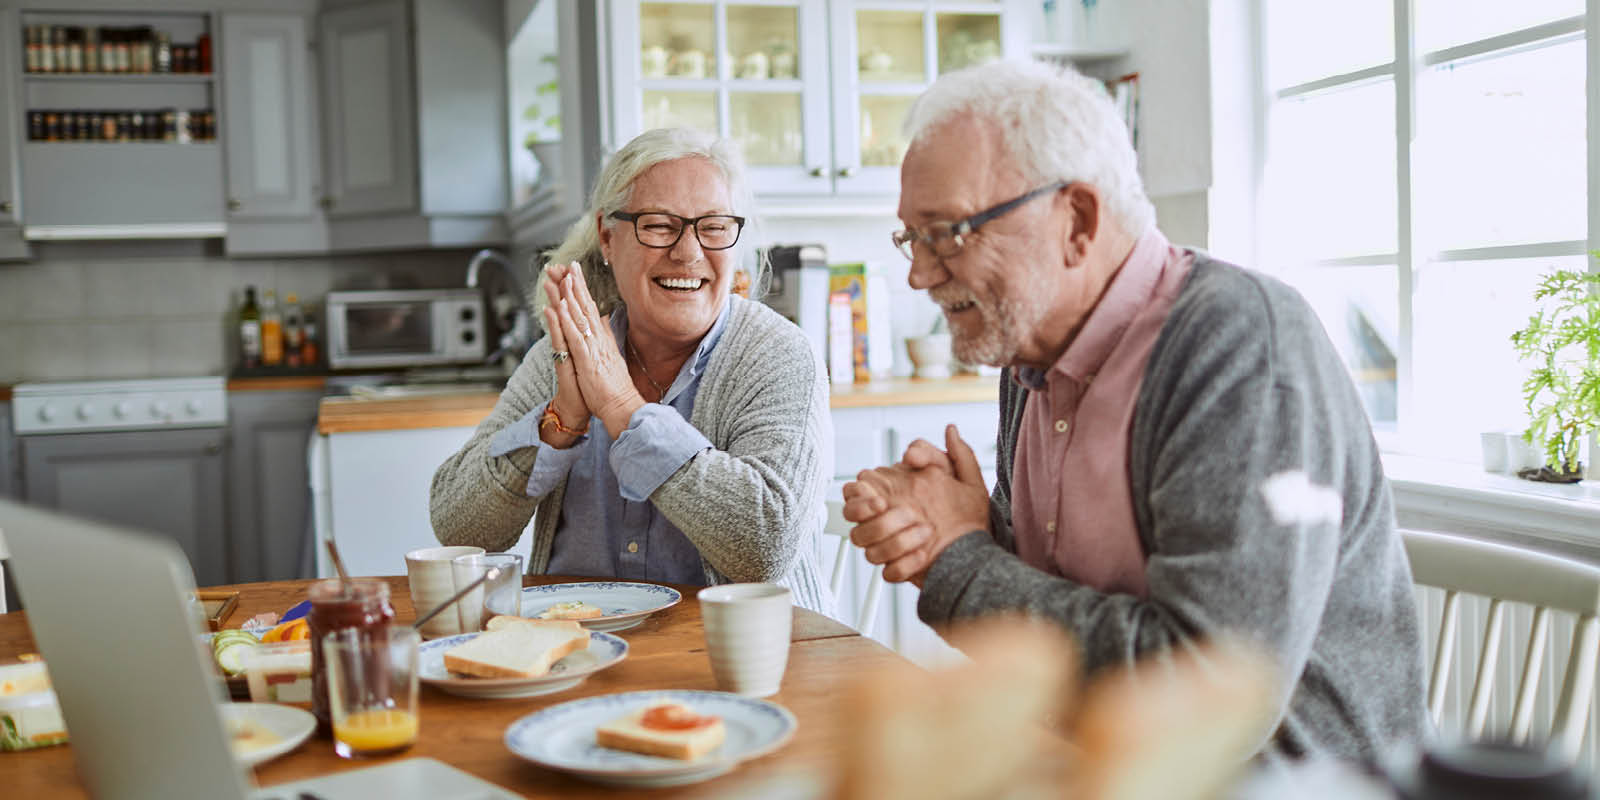 Dementia / Alzheimer's Care – how relationships may change